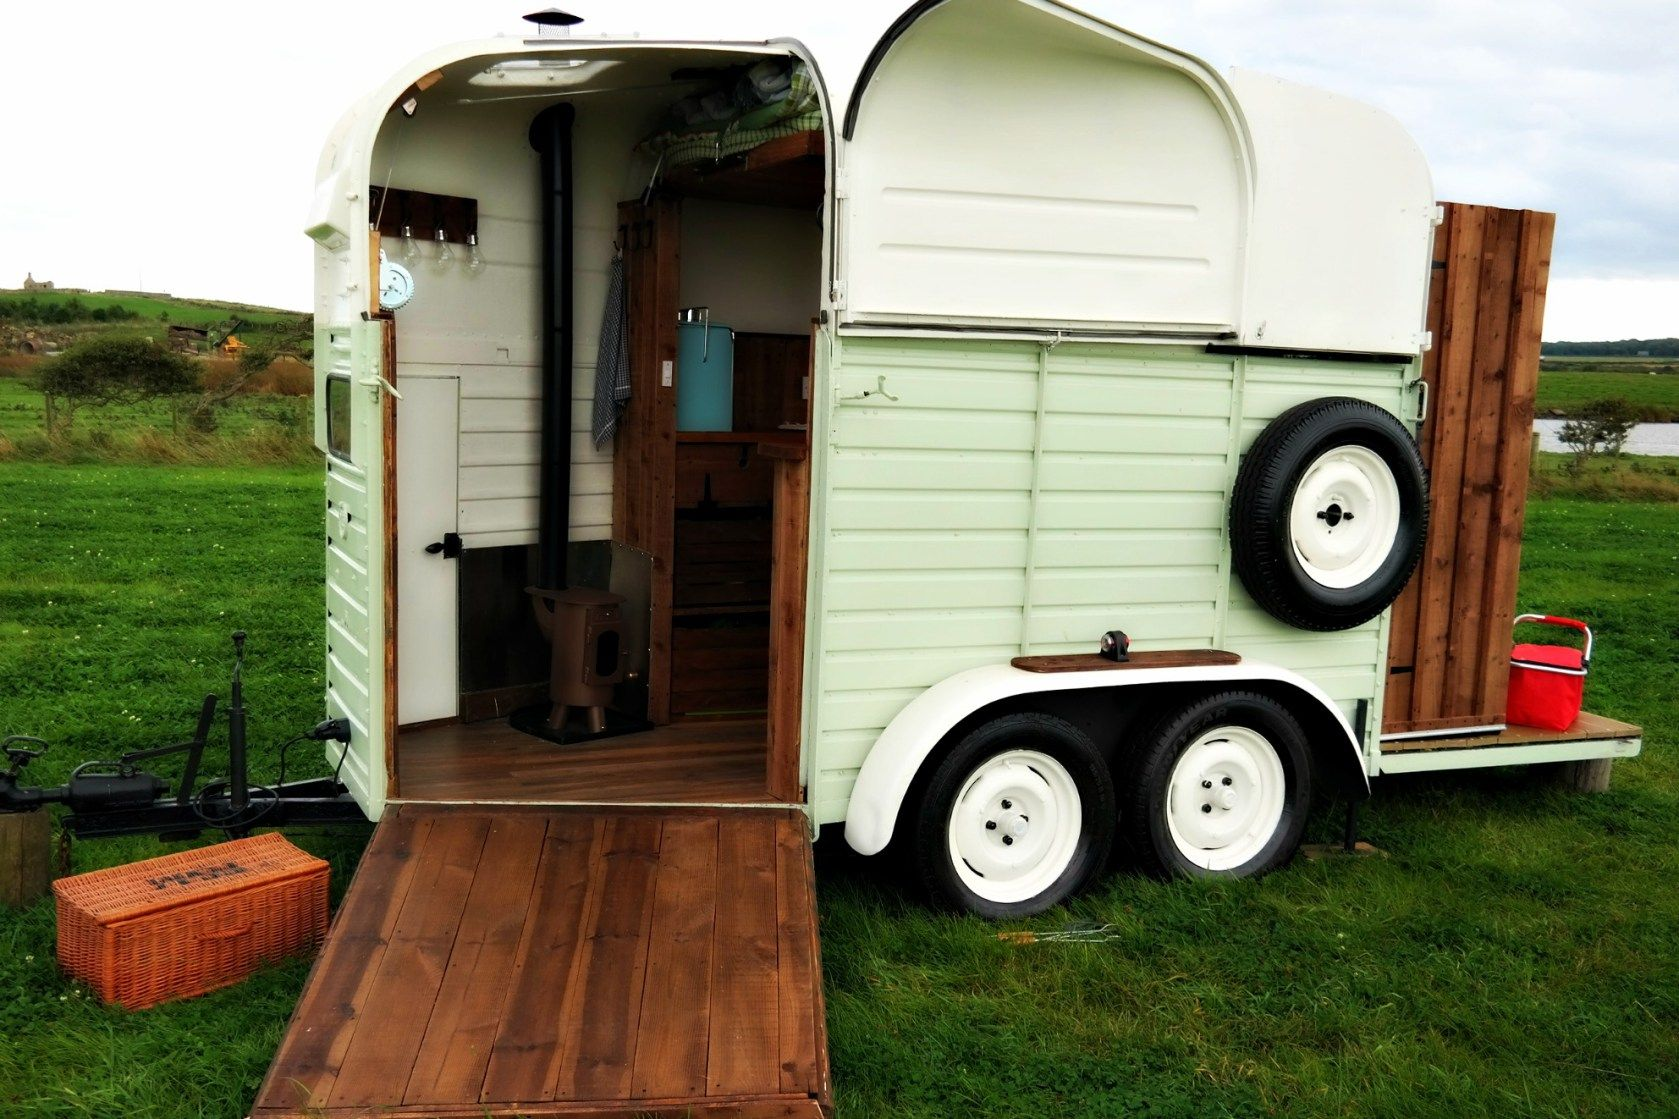 Converted Rice Horse Trailer for Glamping | Bucket List/Things to do